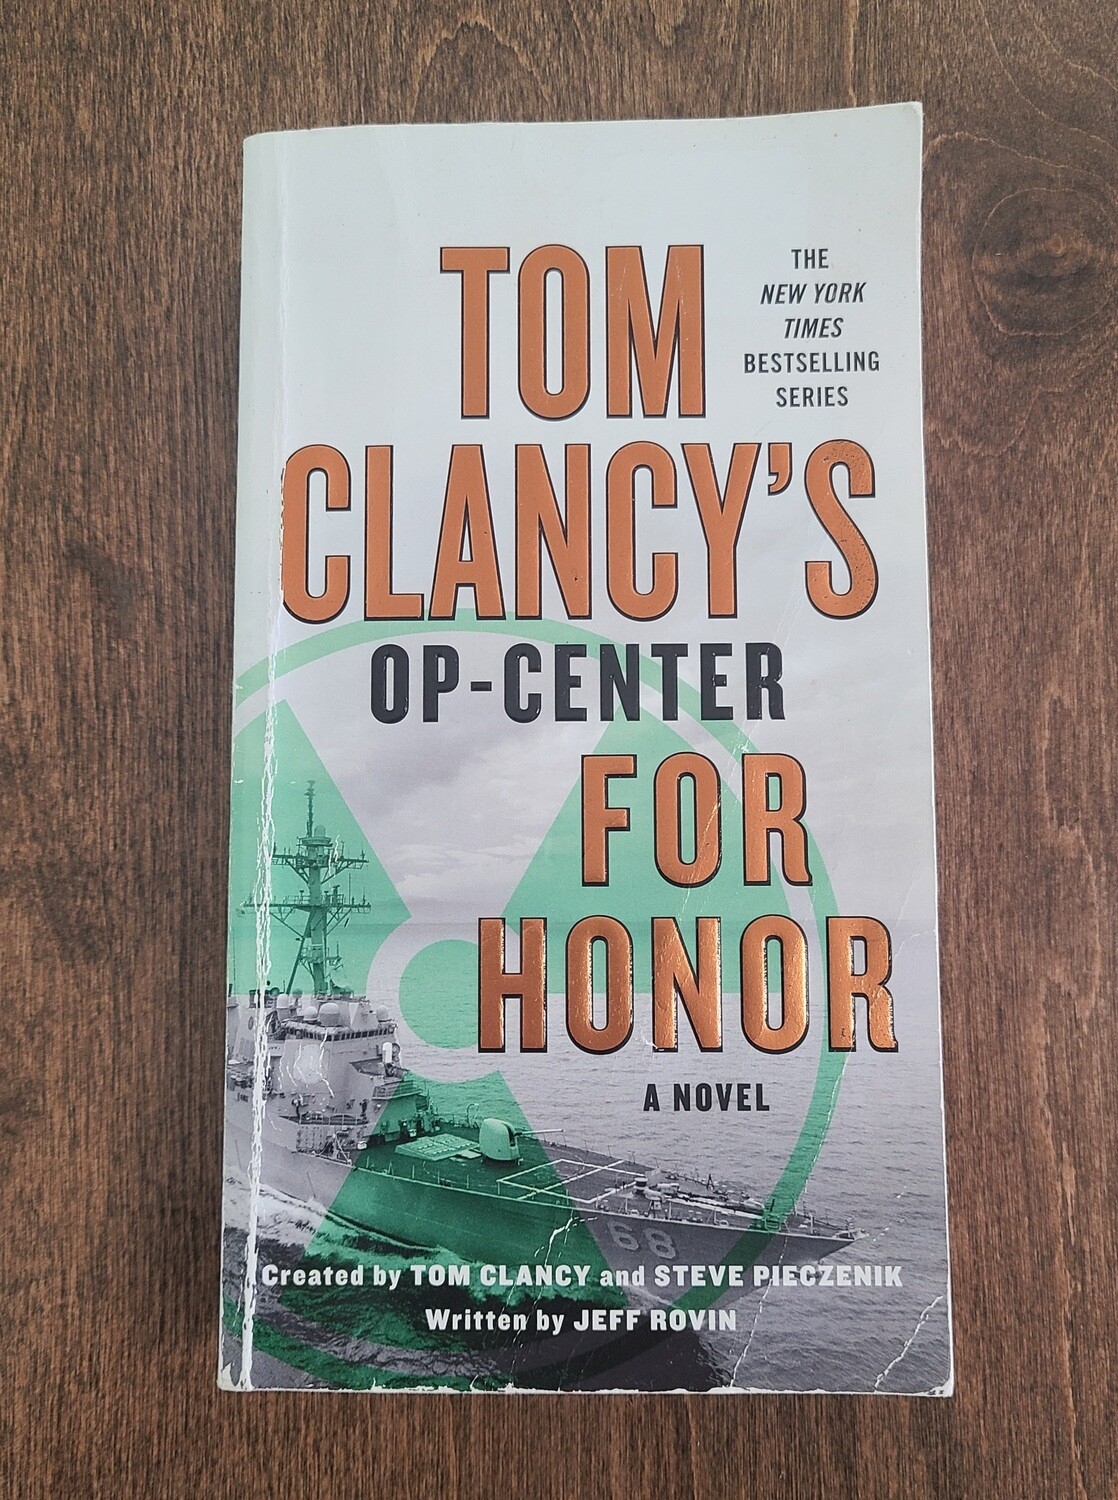 Op-Center for Honor by Tom Clancy, Steve Pieczenik, and Jeff Rovin